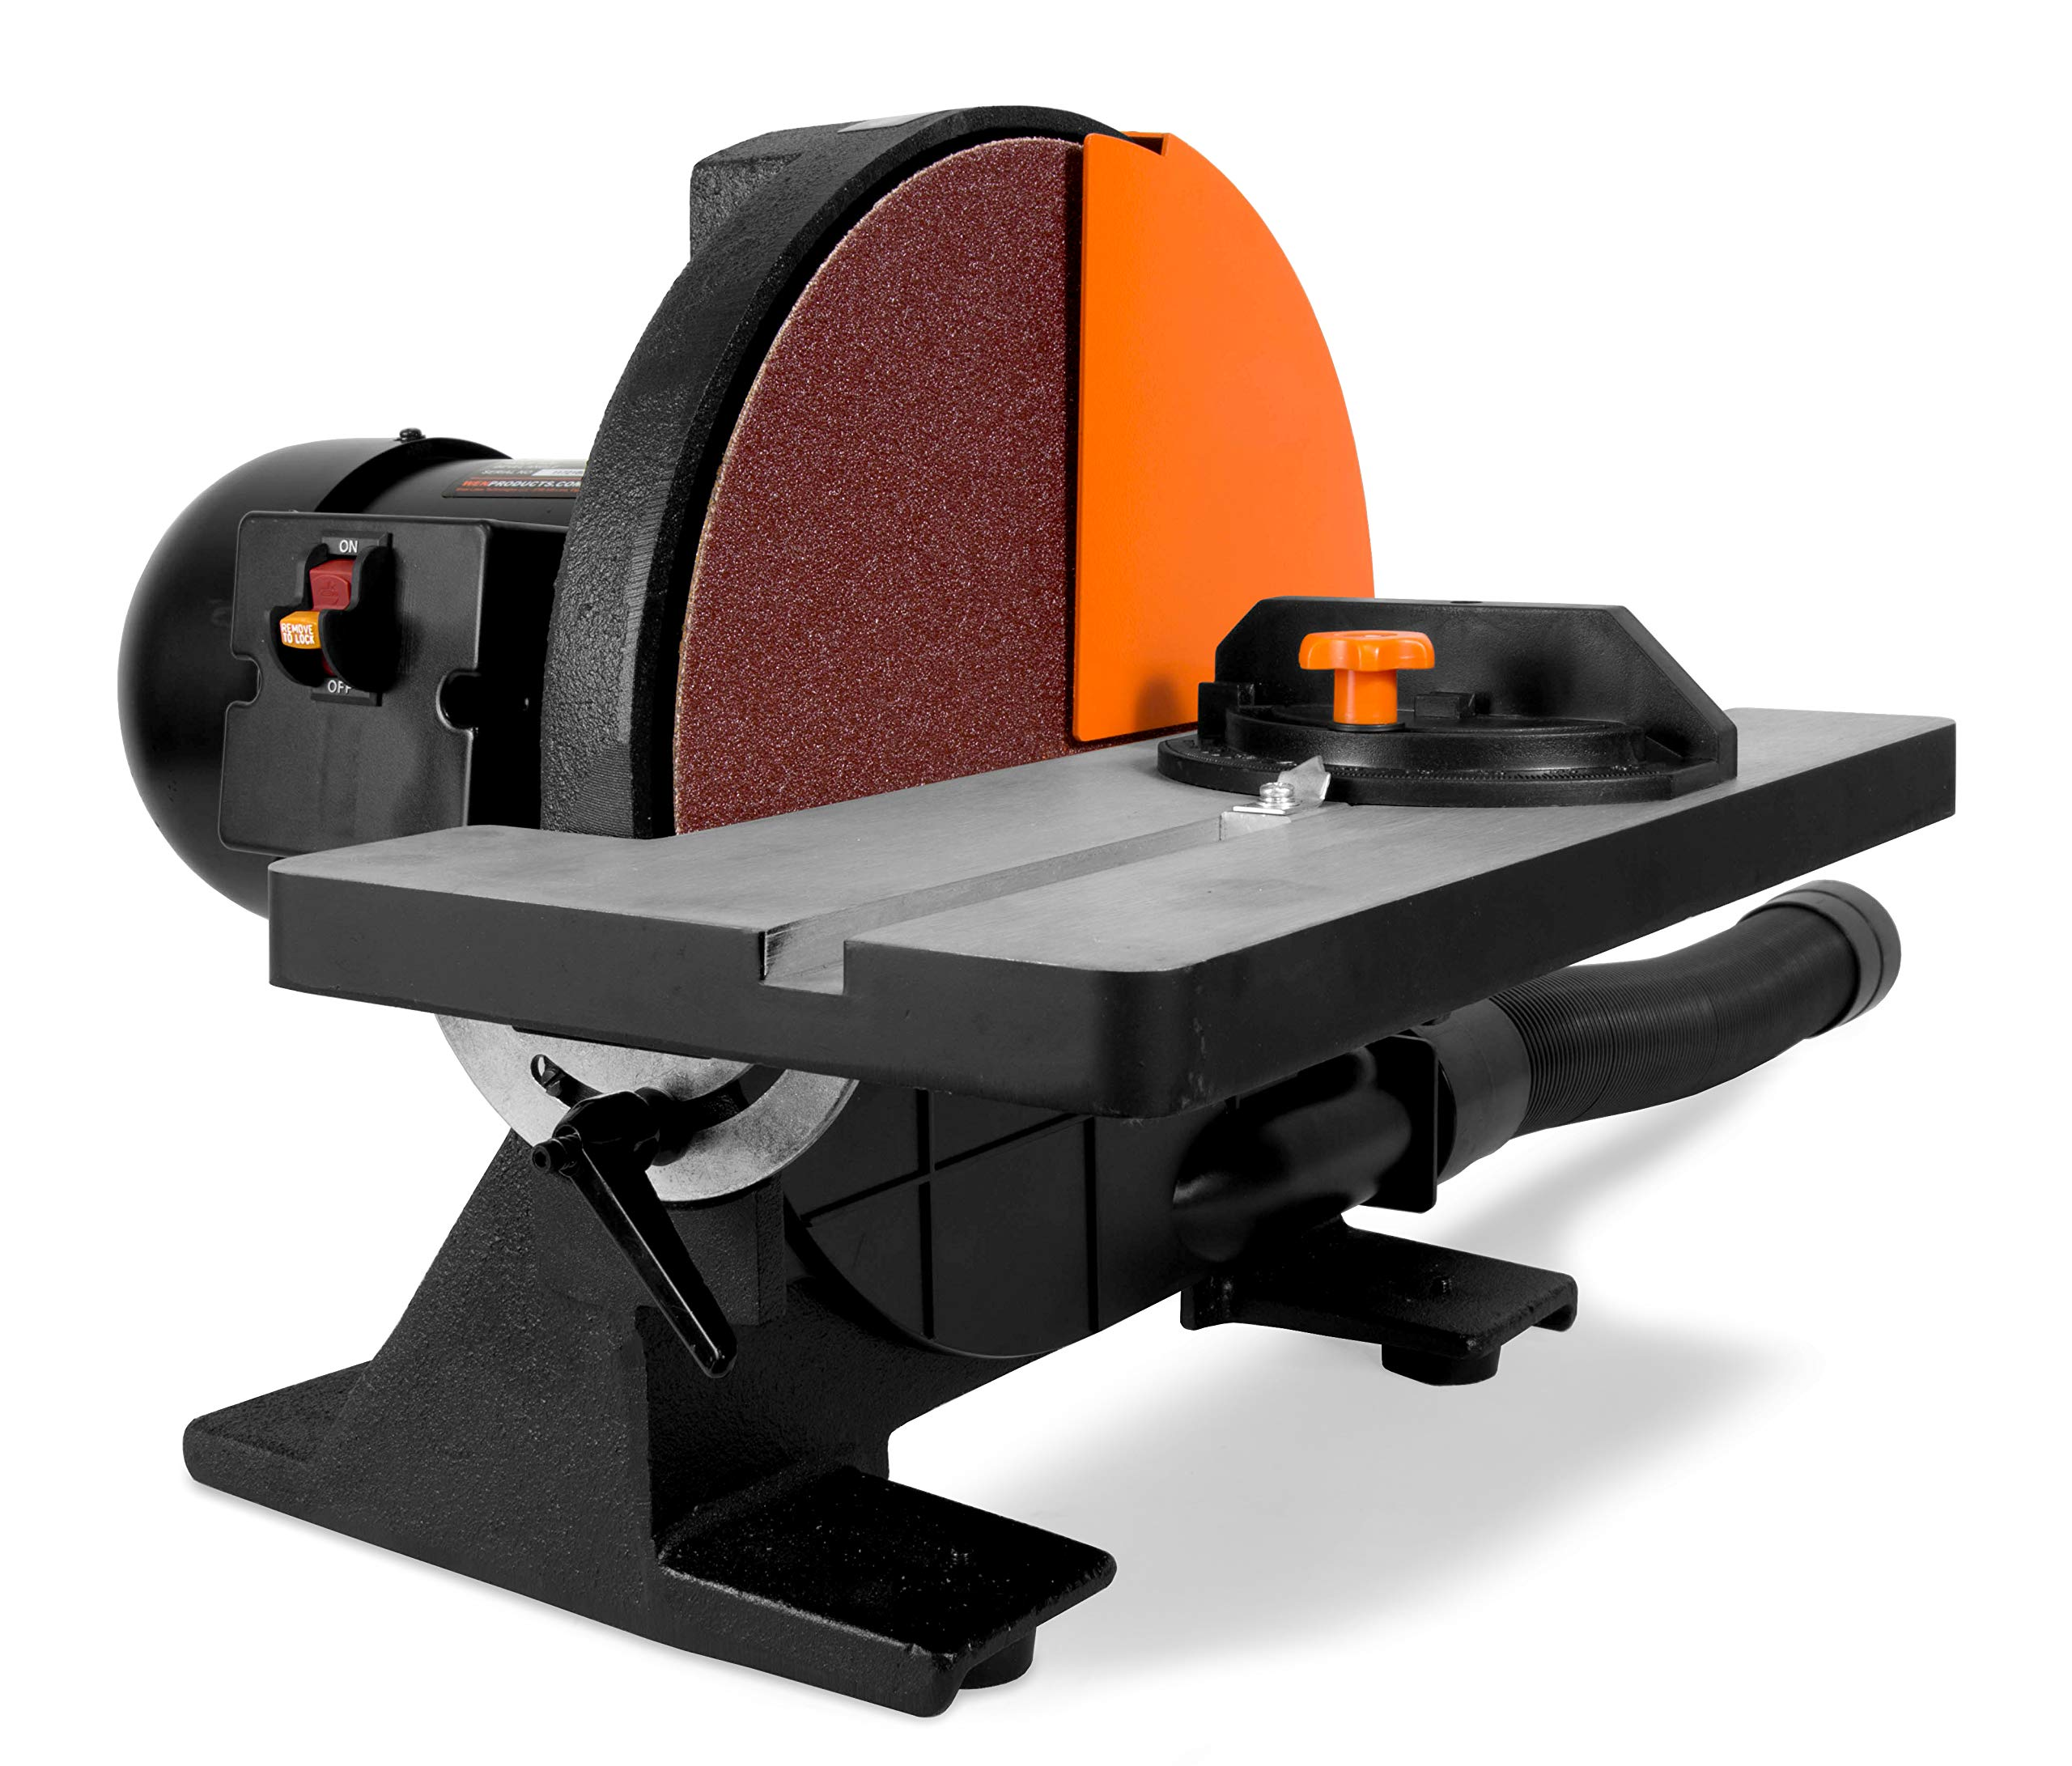 WEN 65812 12-Inch Benchtop Disc Sander with Miter Gauge and Dust Collection System by WEN